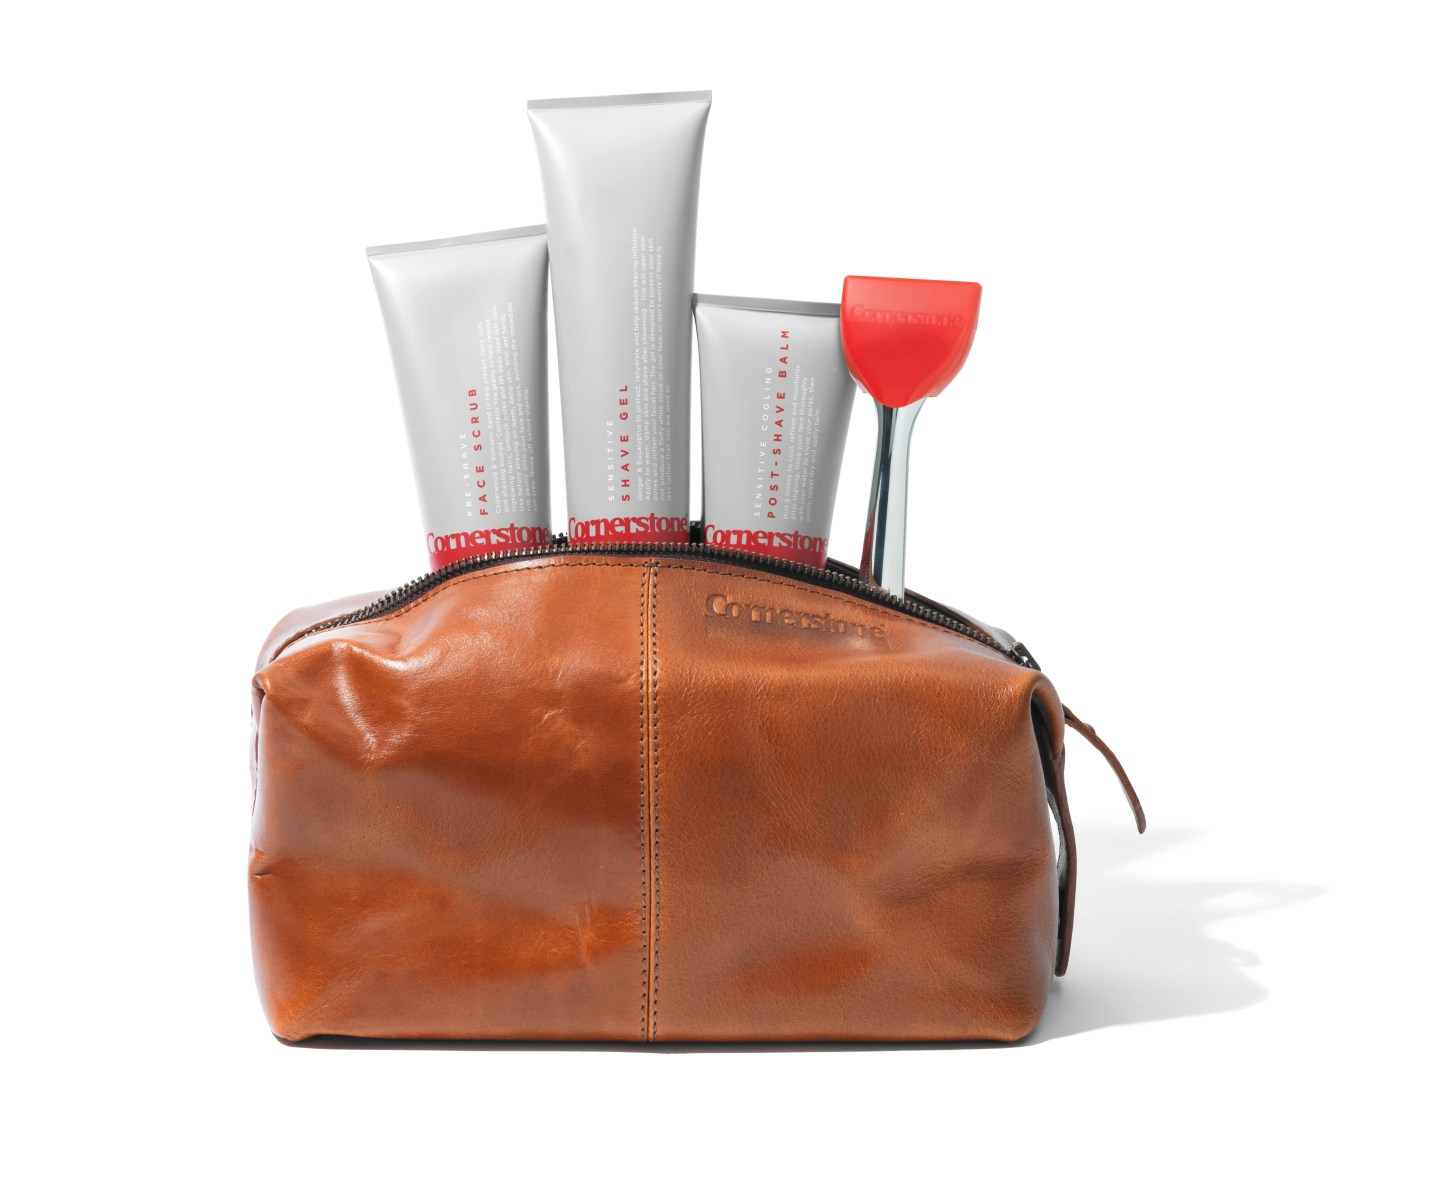 Cornerstone's travel wash bag and shaving products